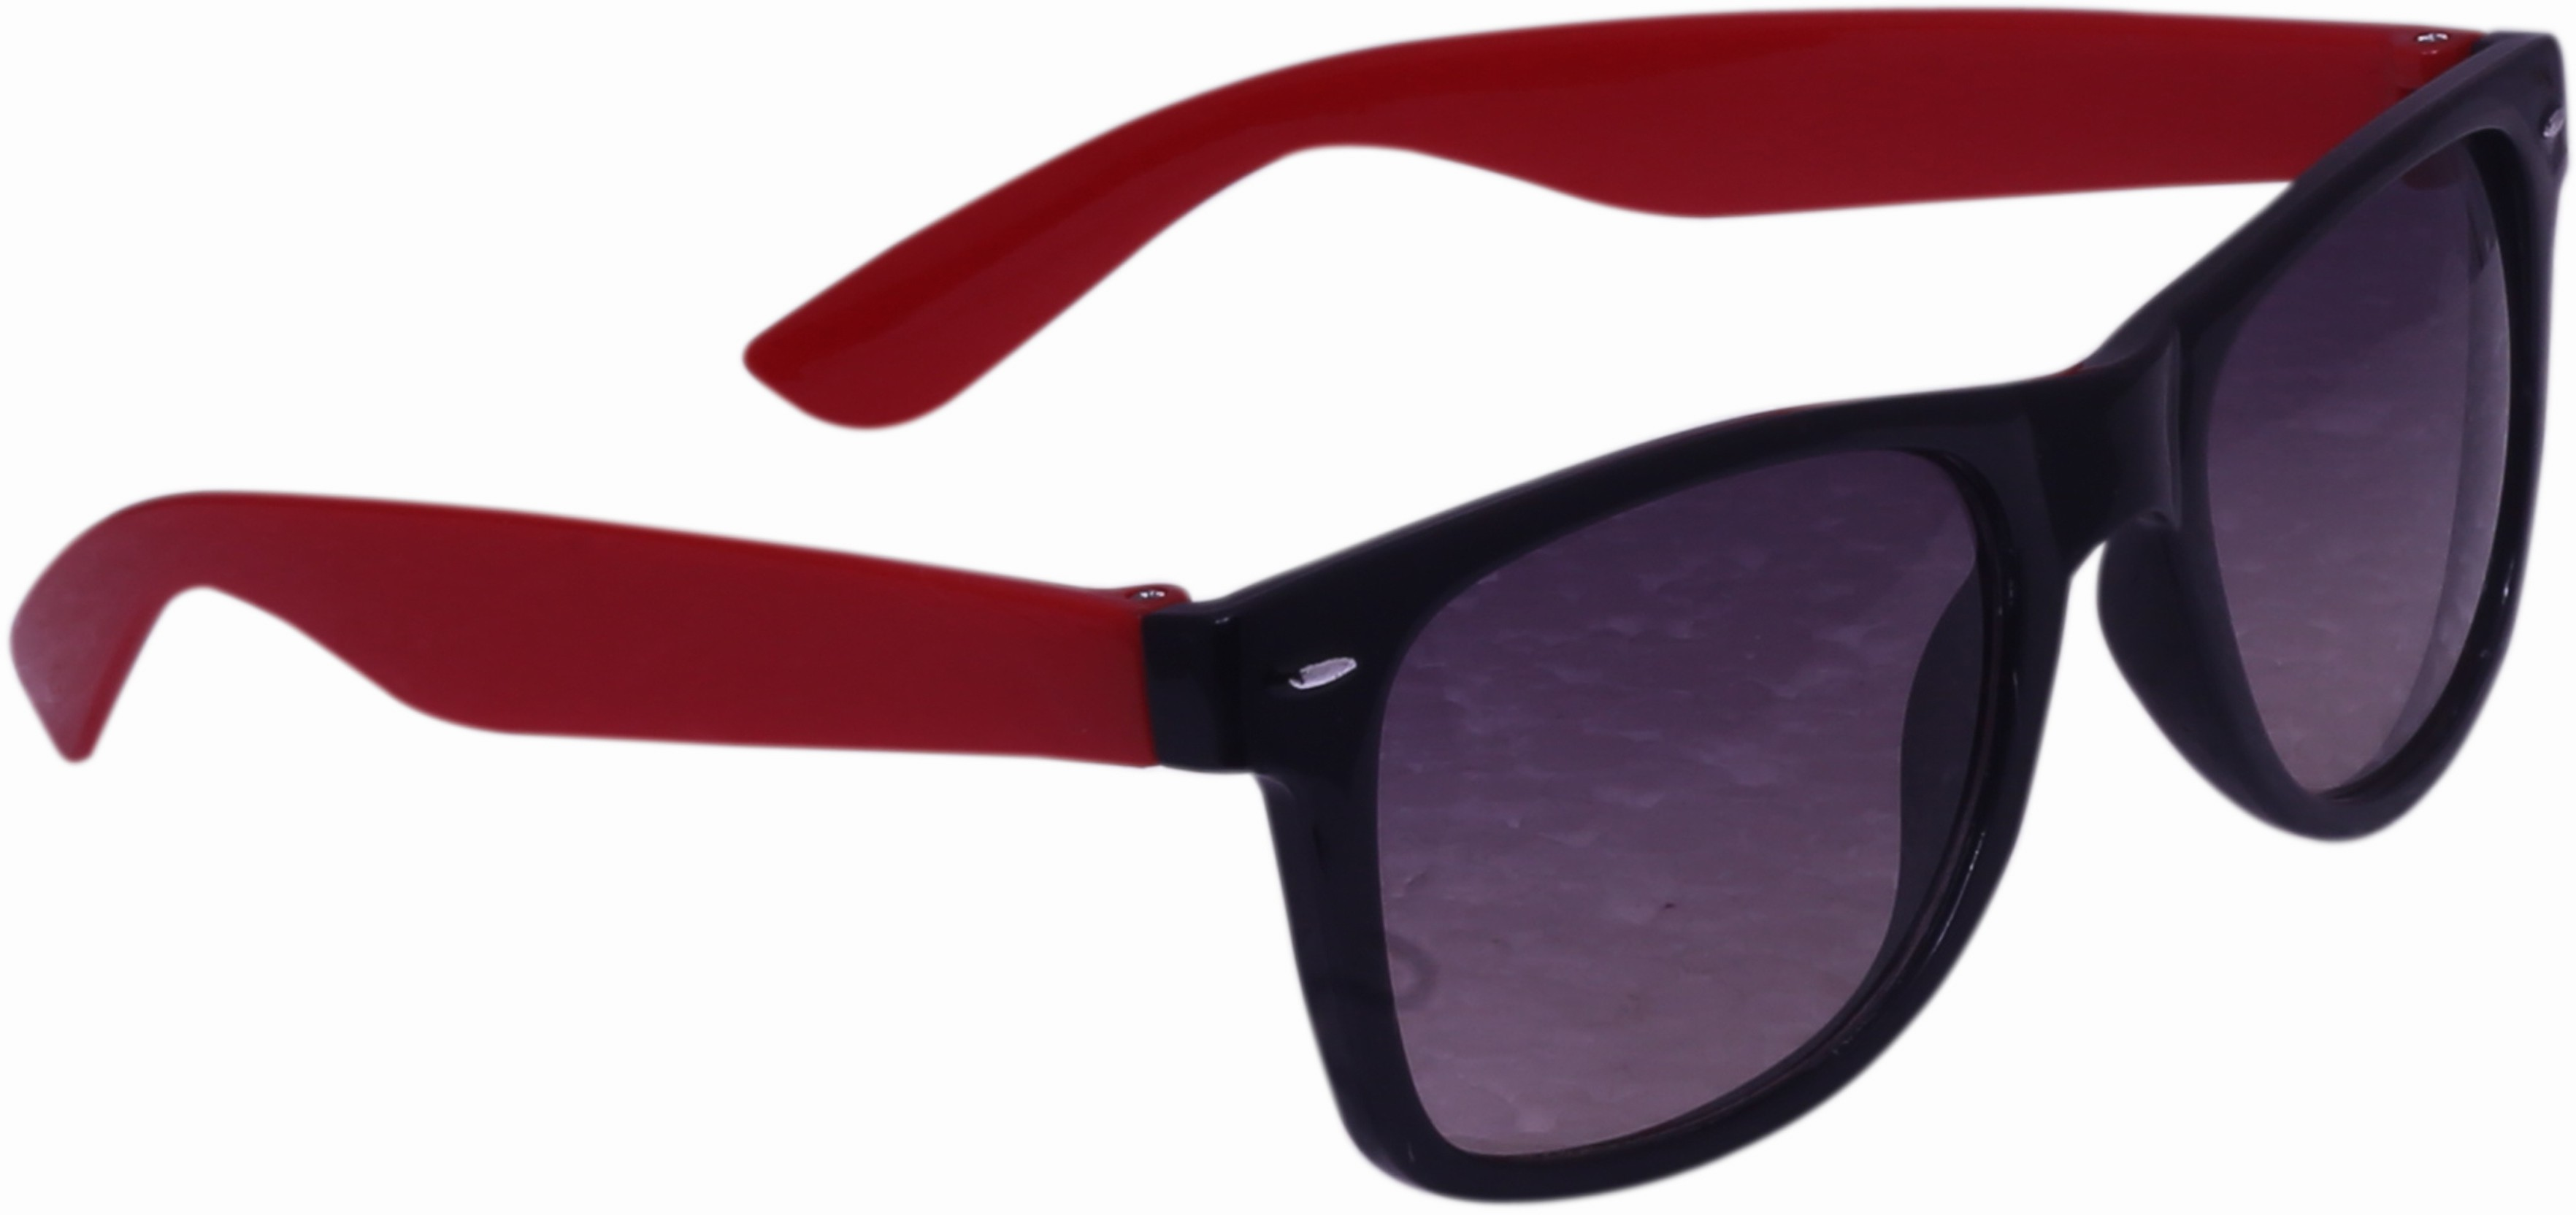 Deals - Delhi - Verre & more <br> Sunglasses<br> Category - sunglasses<br> Business - Flipkart.com